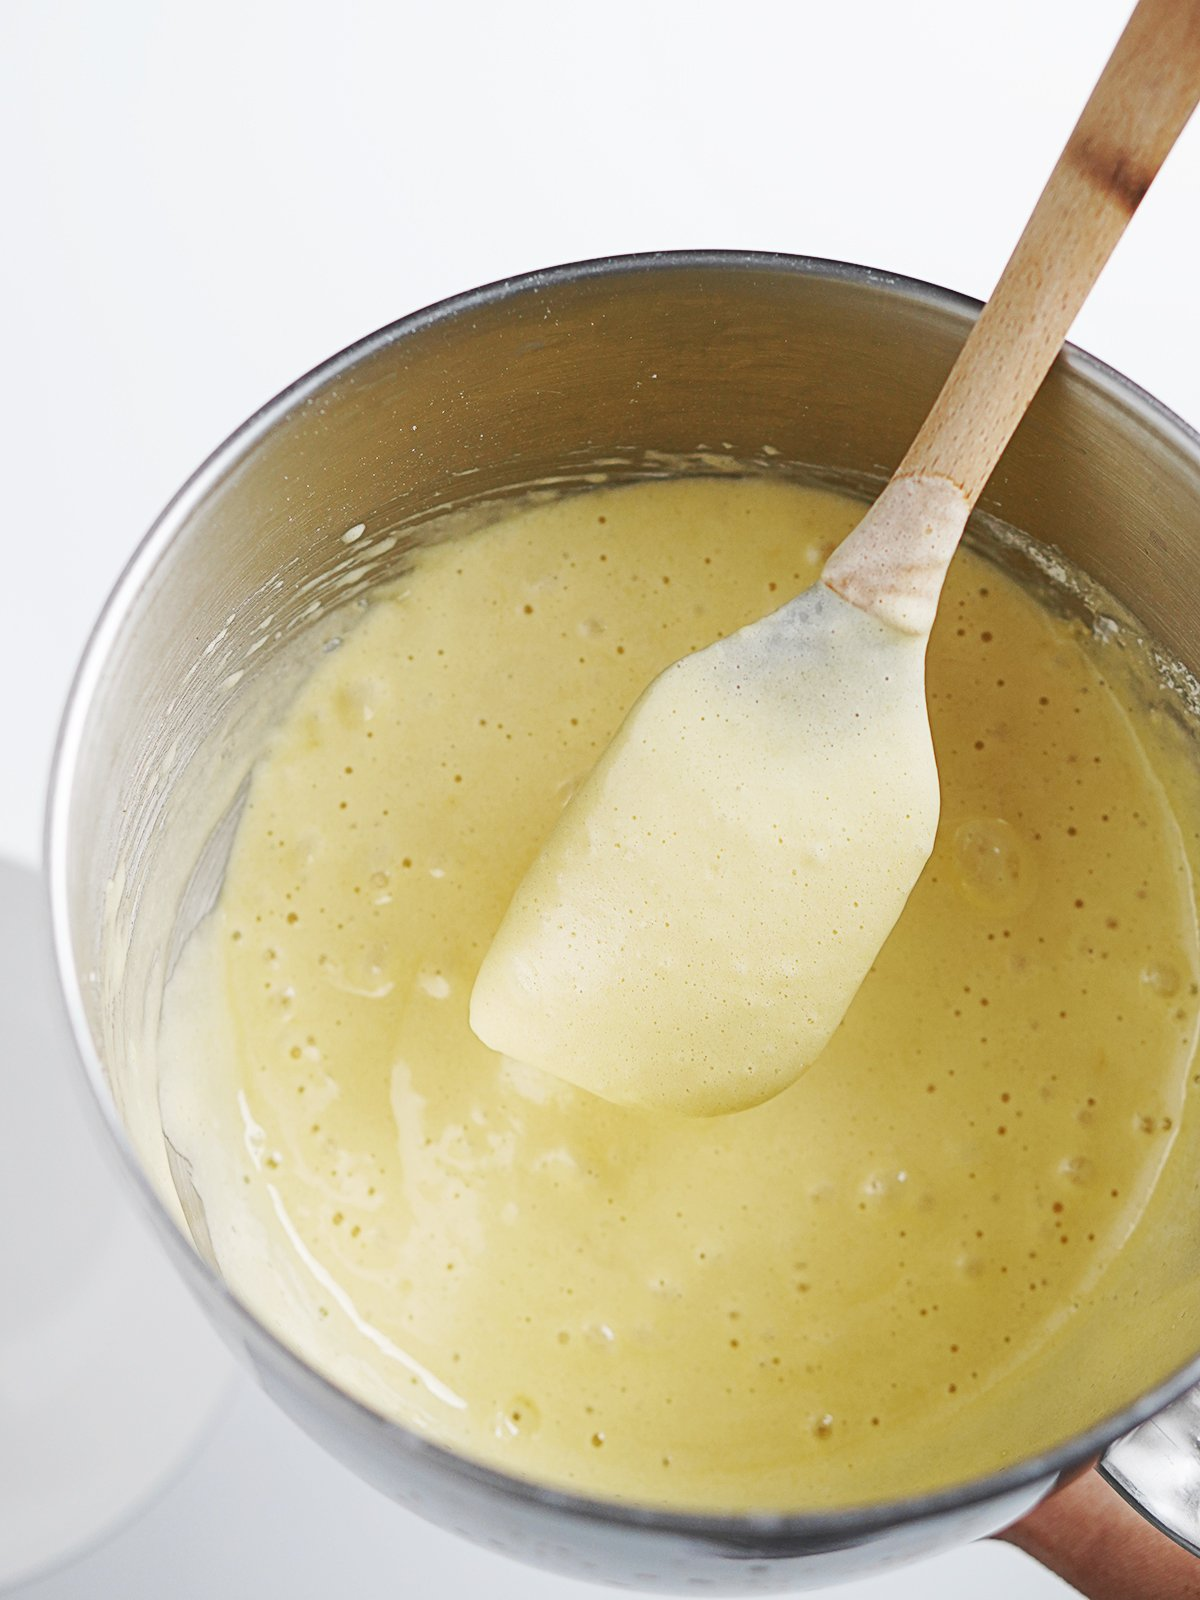 Cake batter in a mixing bowl